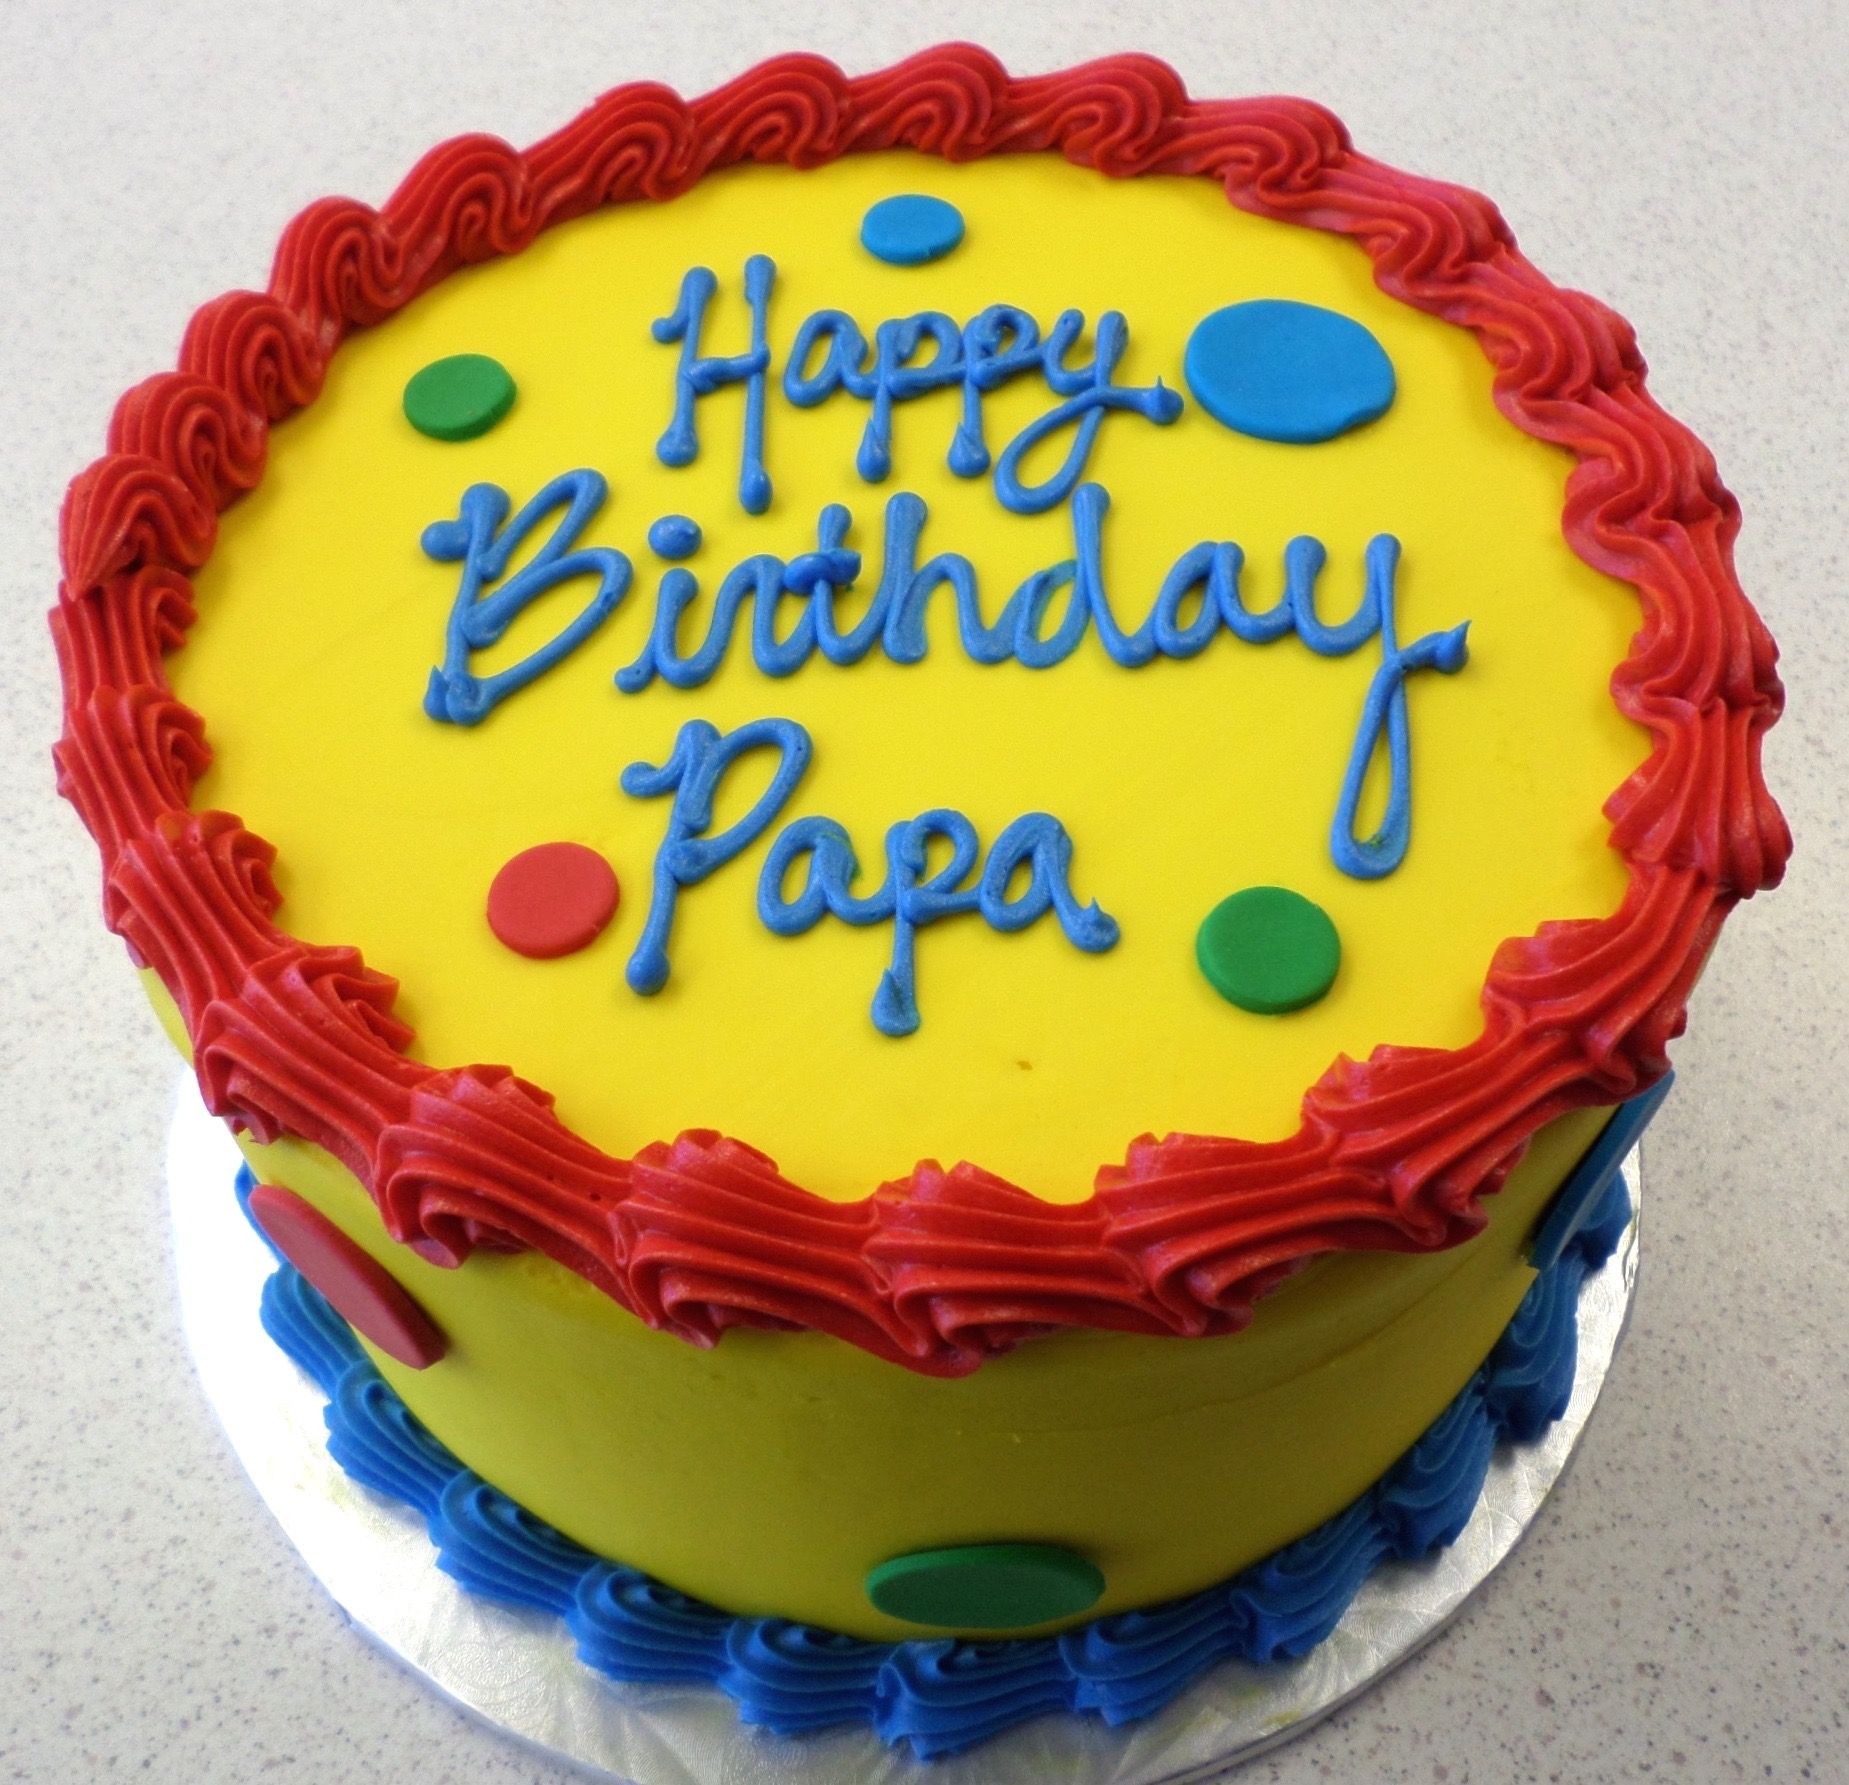 Happy Birthday Papa Cake Our Cakes Pinterest Happy birthday